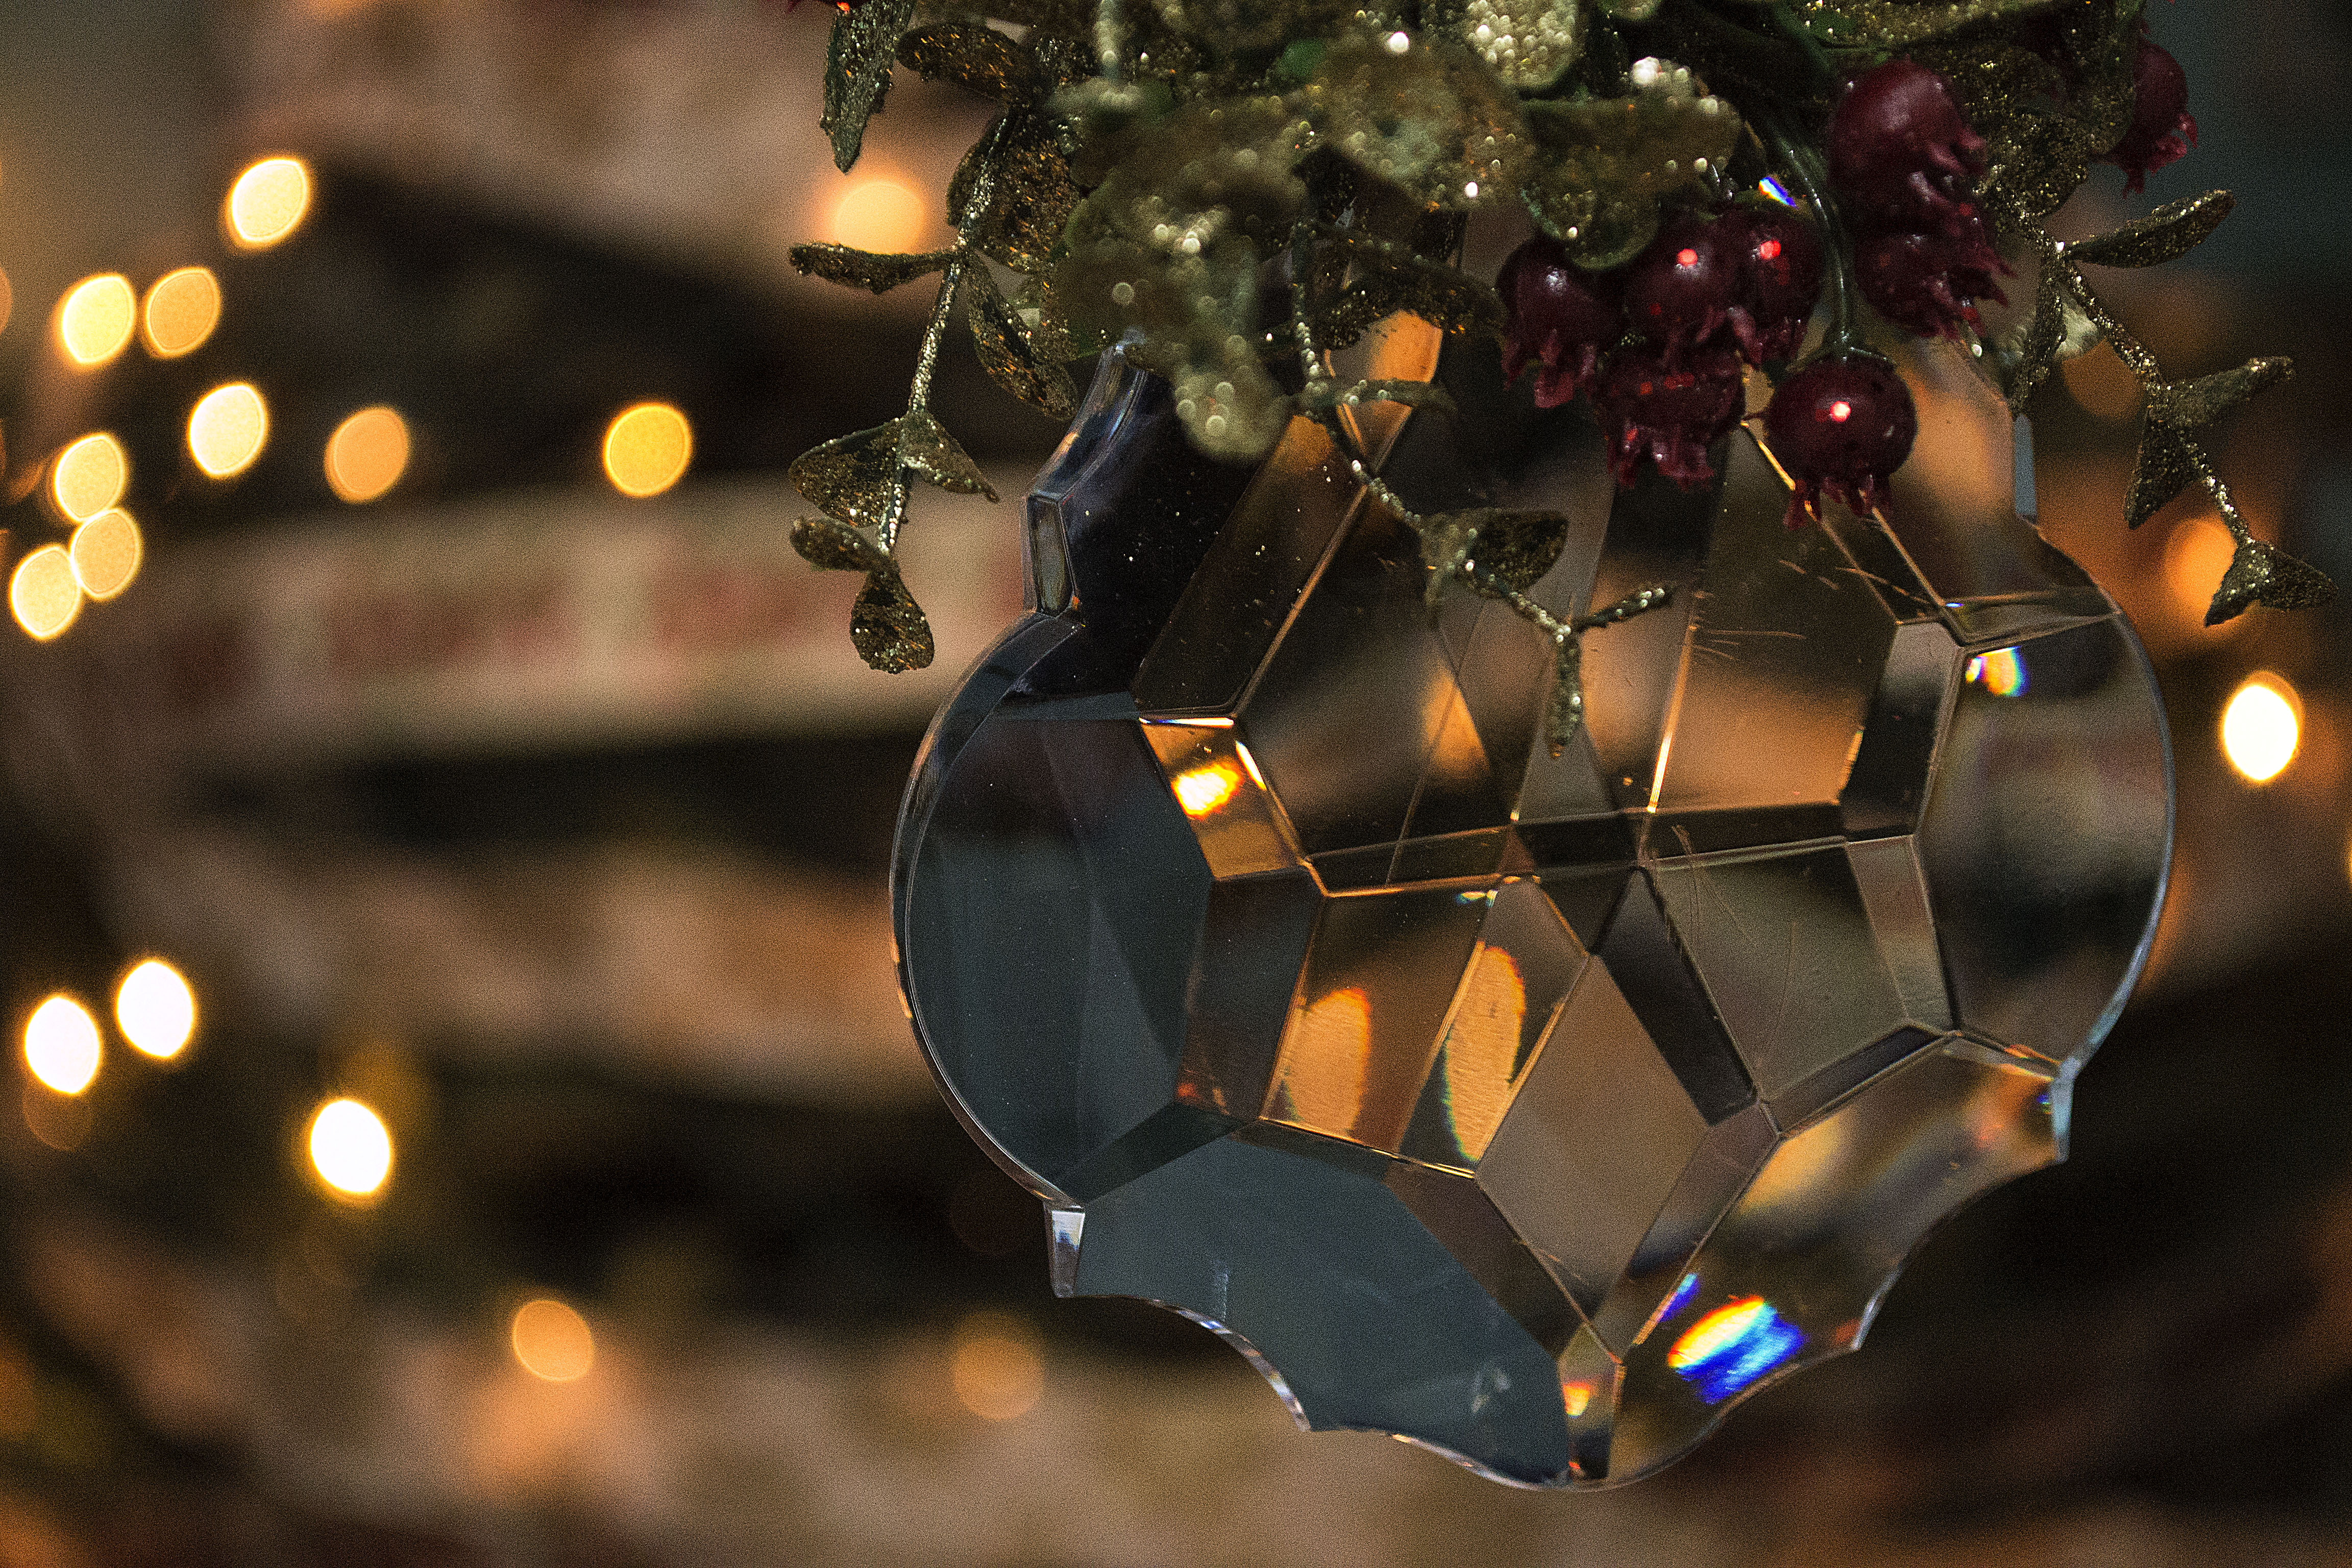 Get in the Christmas Spirit! Photo by Saddleback Photography